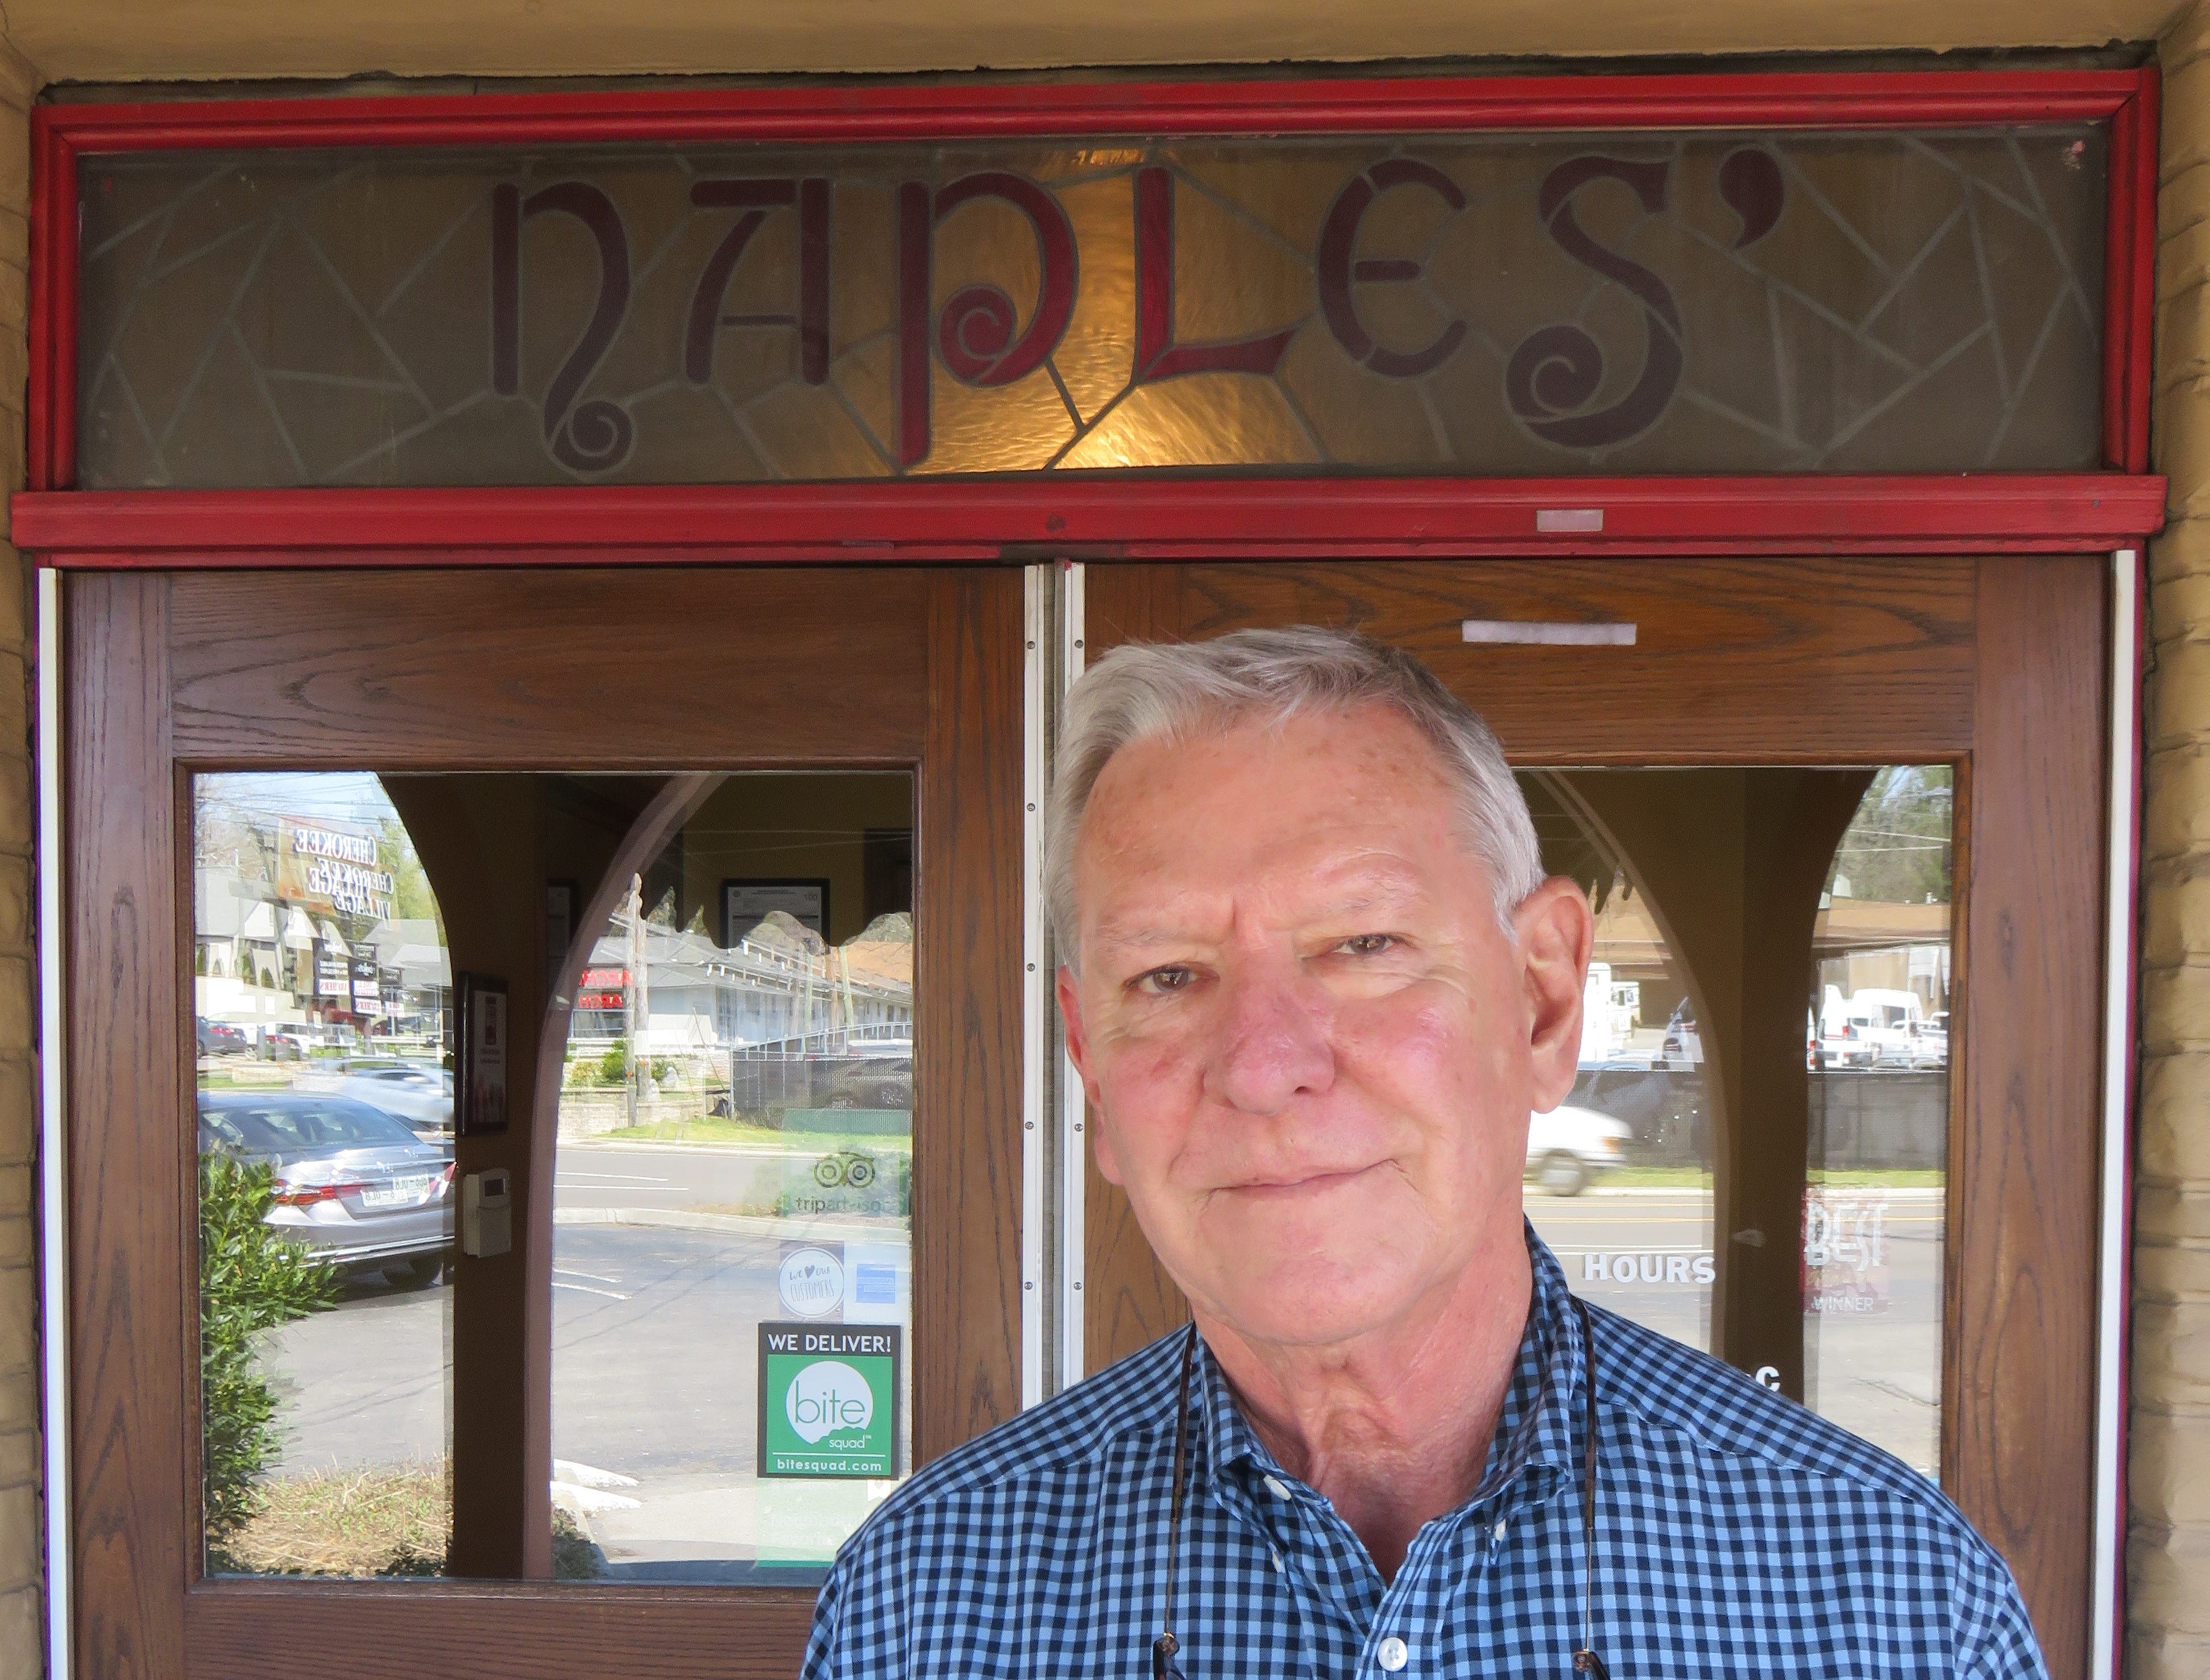 Owner Bob Luper in front of Naples Italian Restaurant on March 20. He and wife Becky recently sold the restaurant and property. 2019